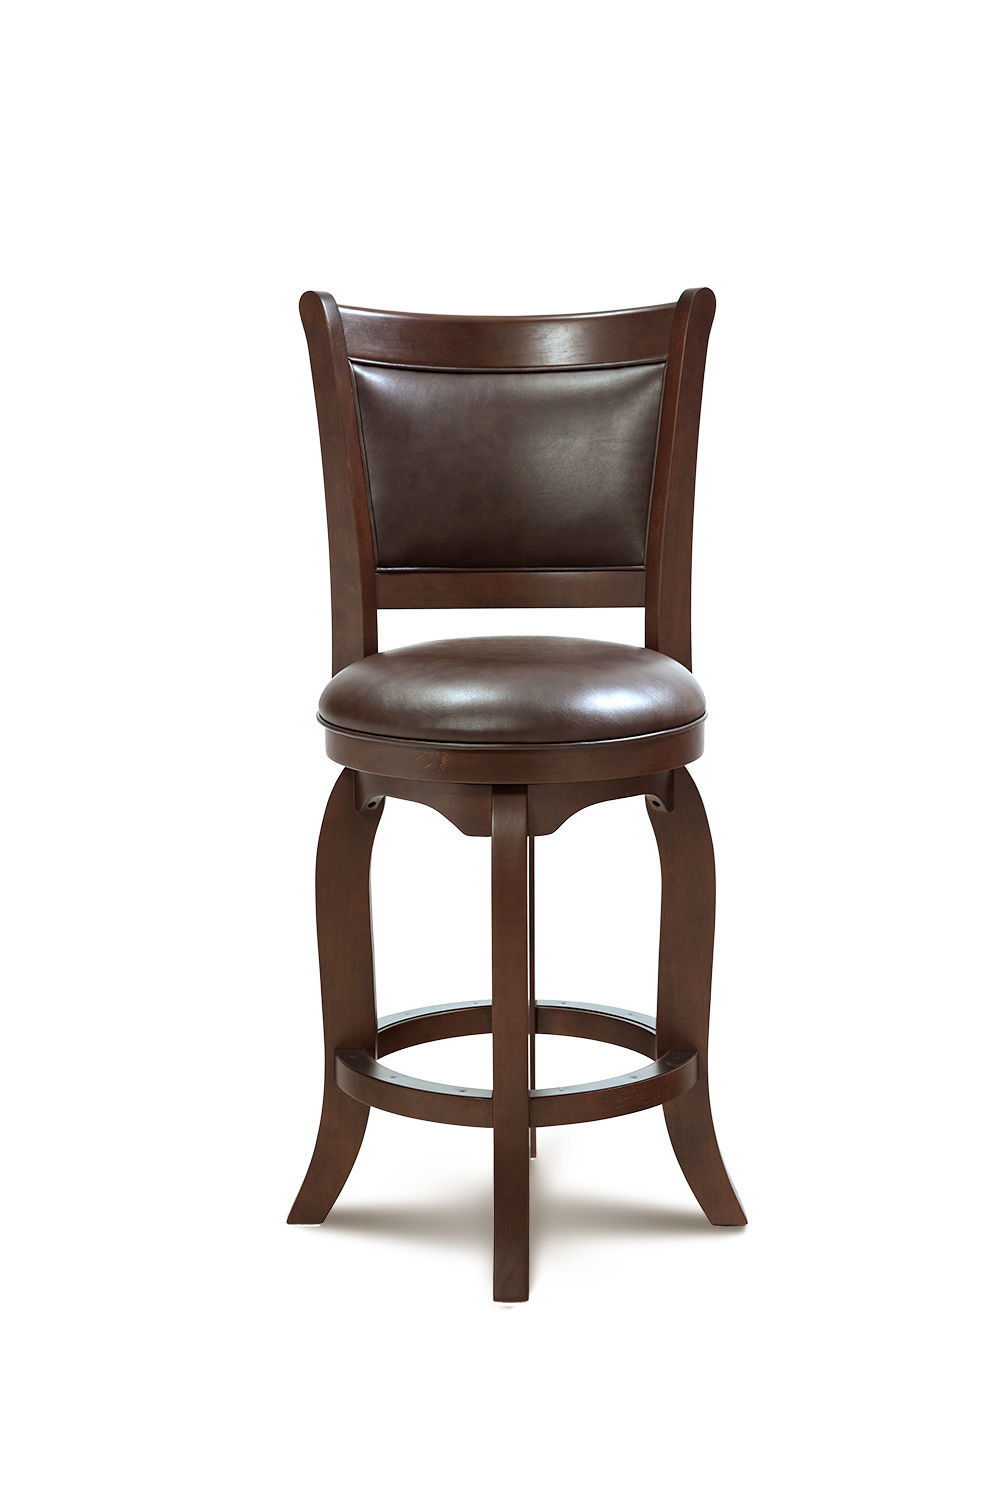 "27"" BRIGHTON COUNTER-HEIGHT SWIVEL BARSTOOL CHAIR IN CHERRY"